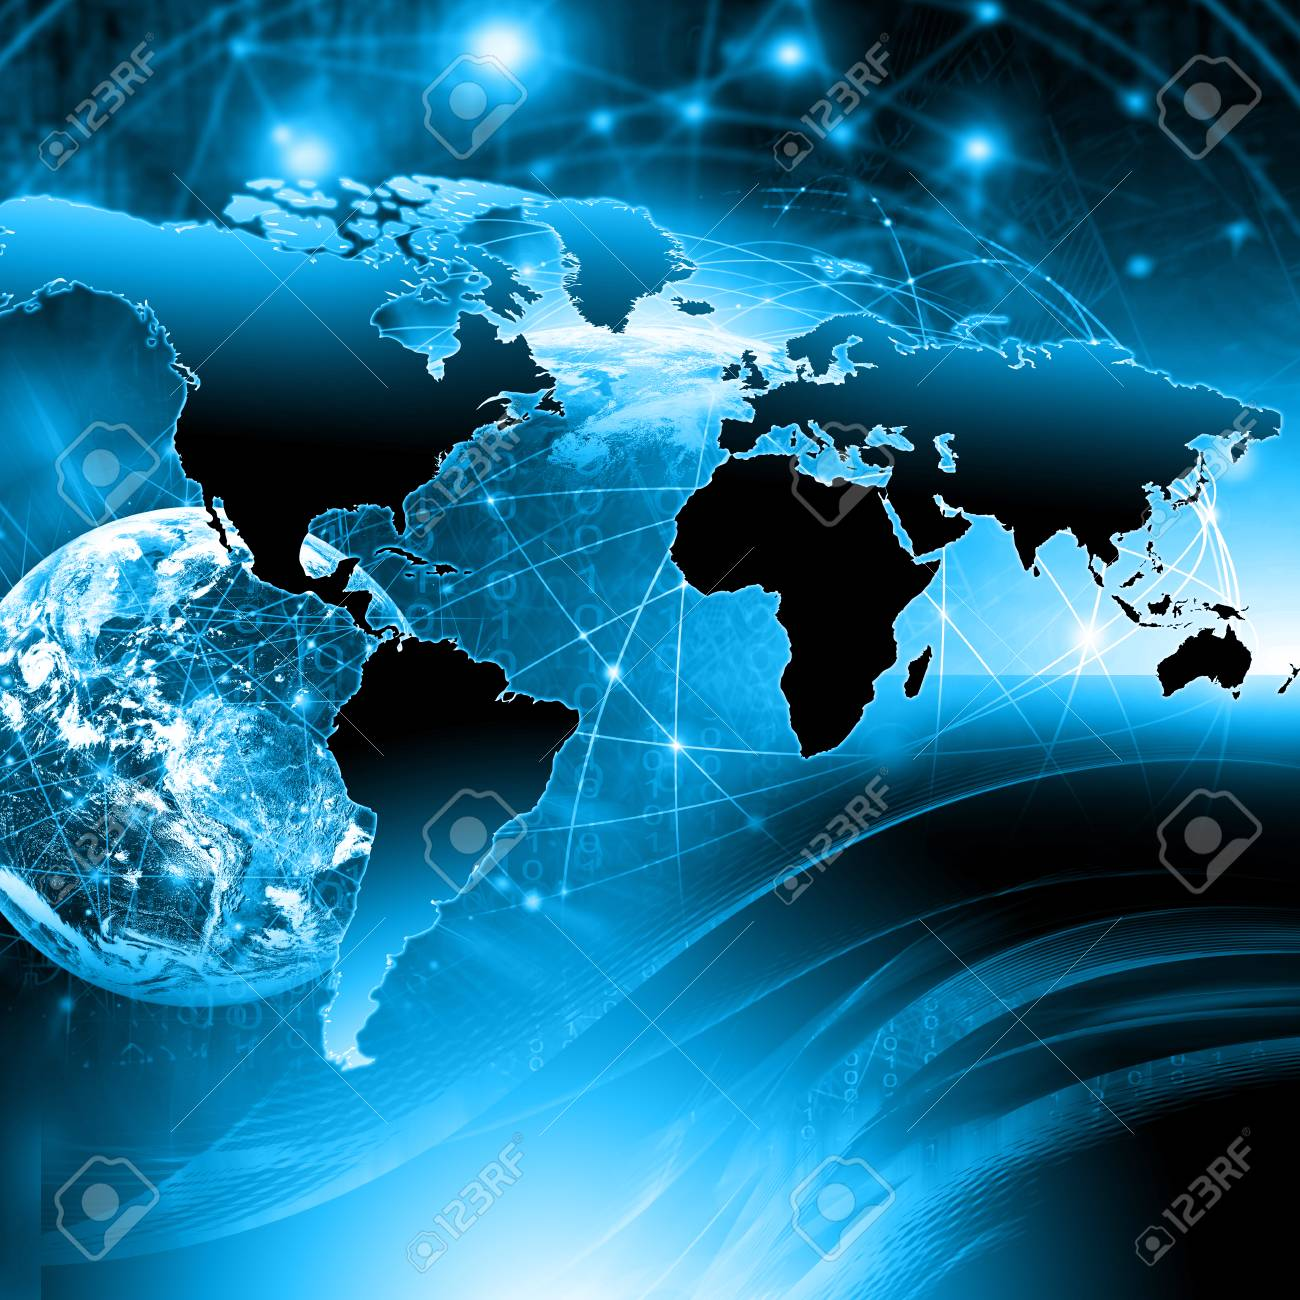 Physical World Map Illustration Stock Photo Picture And Royalty